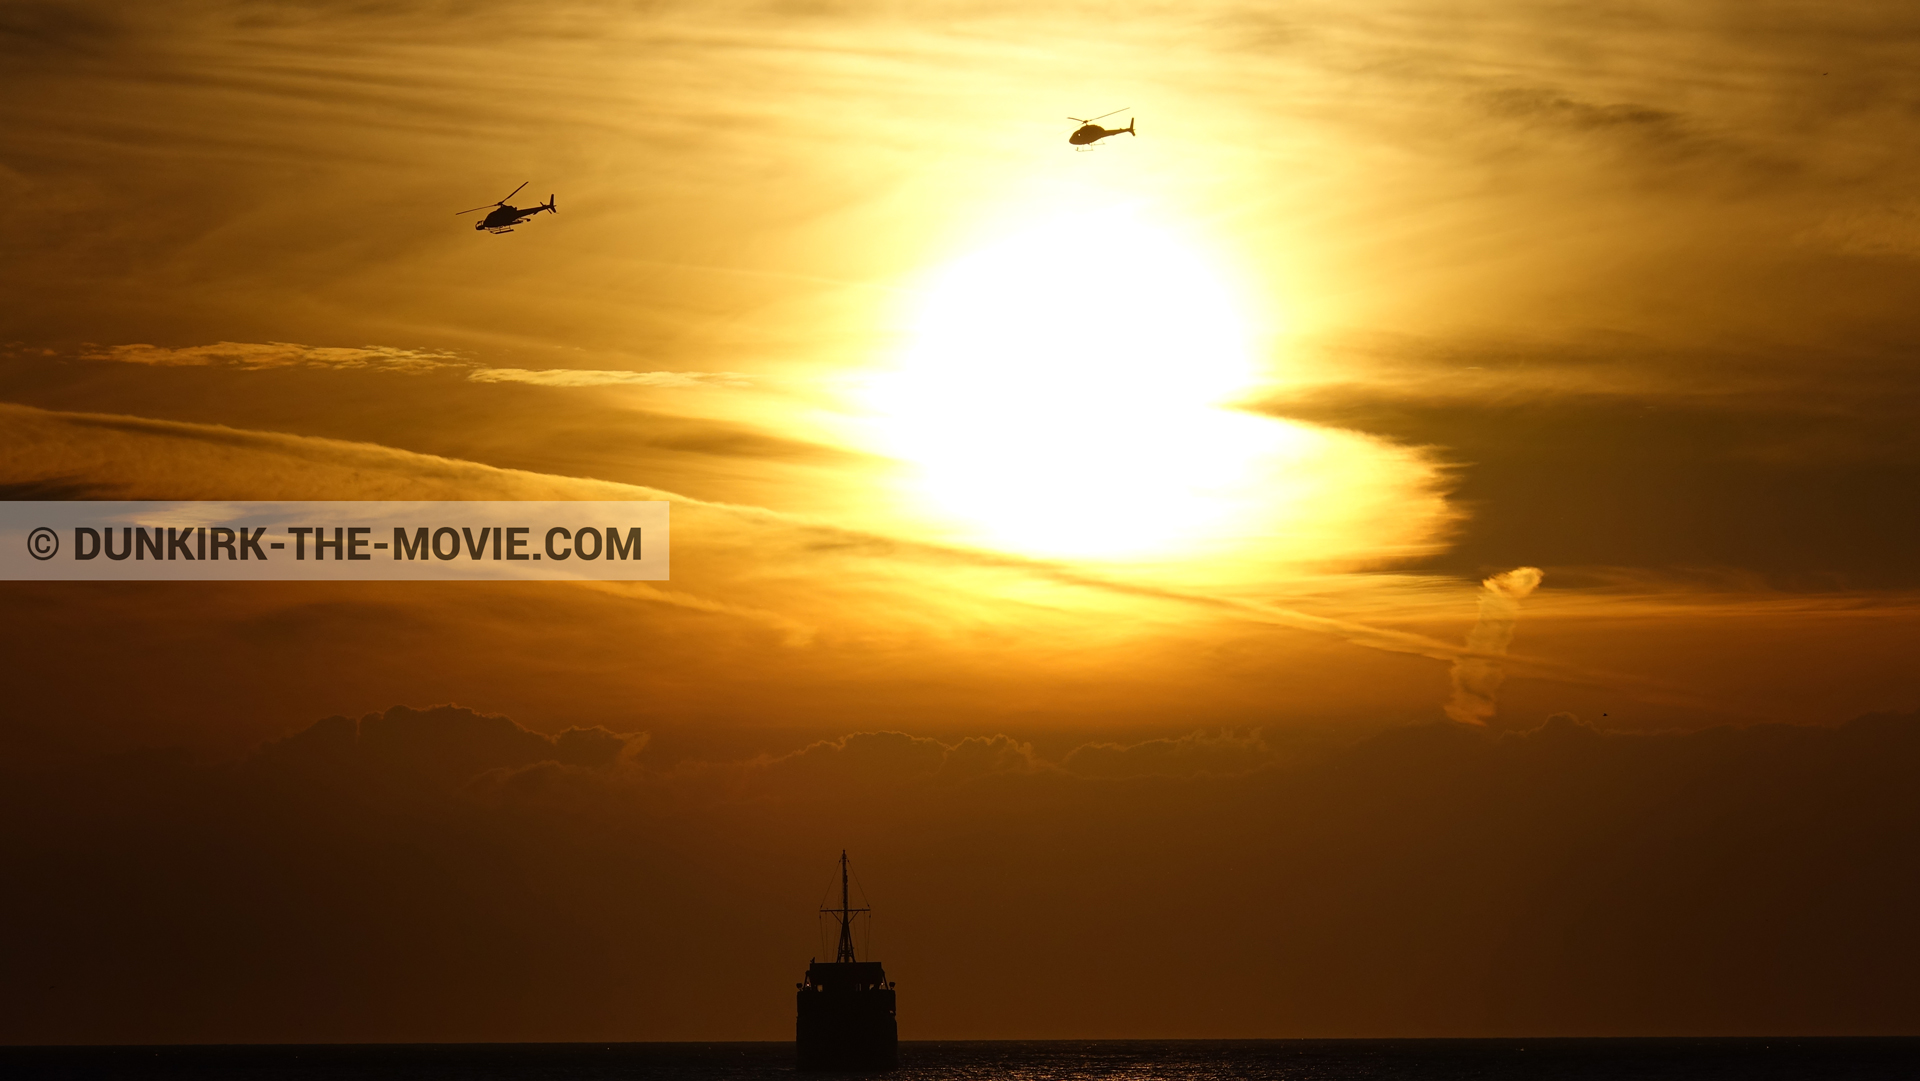 Picture with boat, orange sky, helicopter camera,  from behind the scene of the Dunkirk movie by Nolan